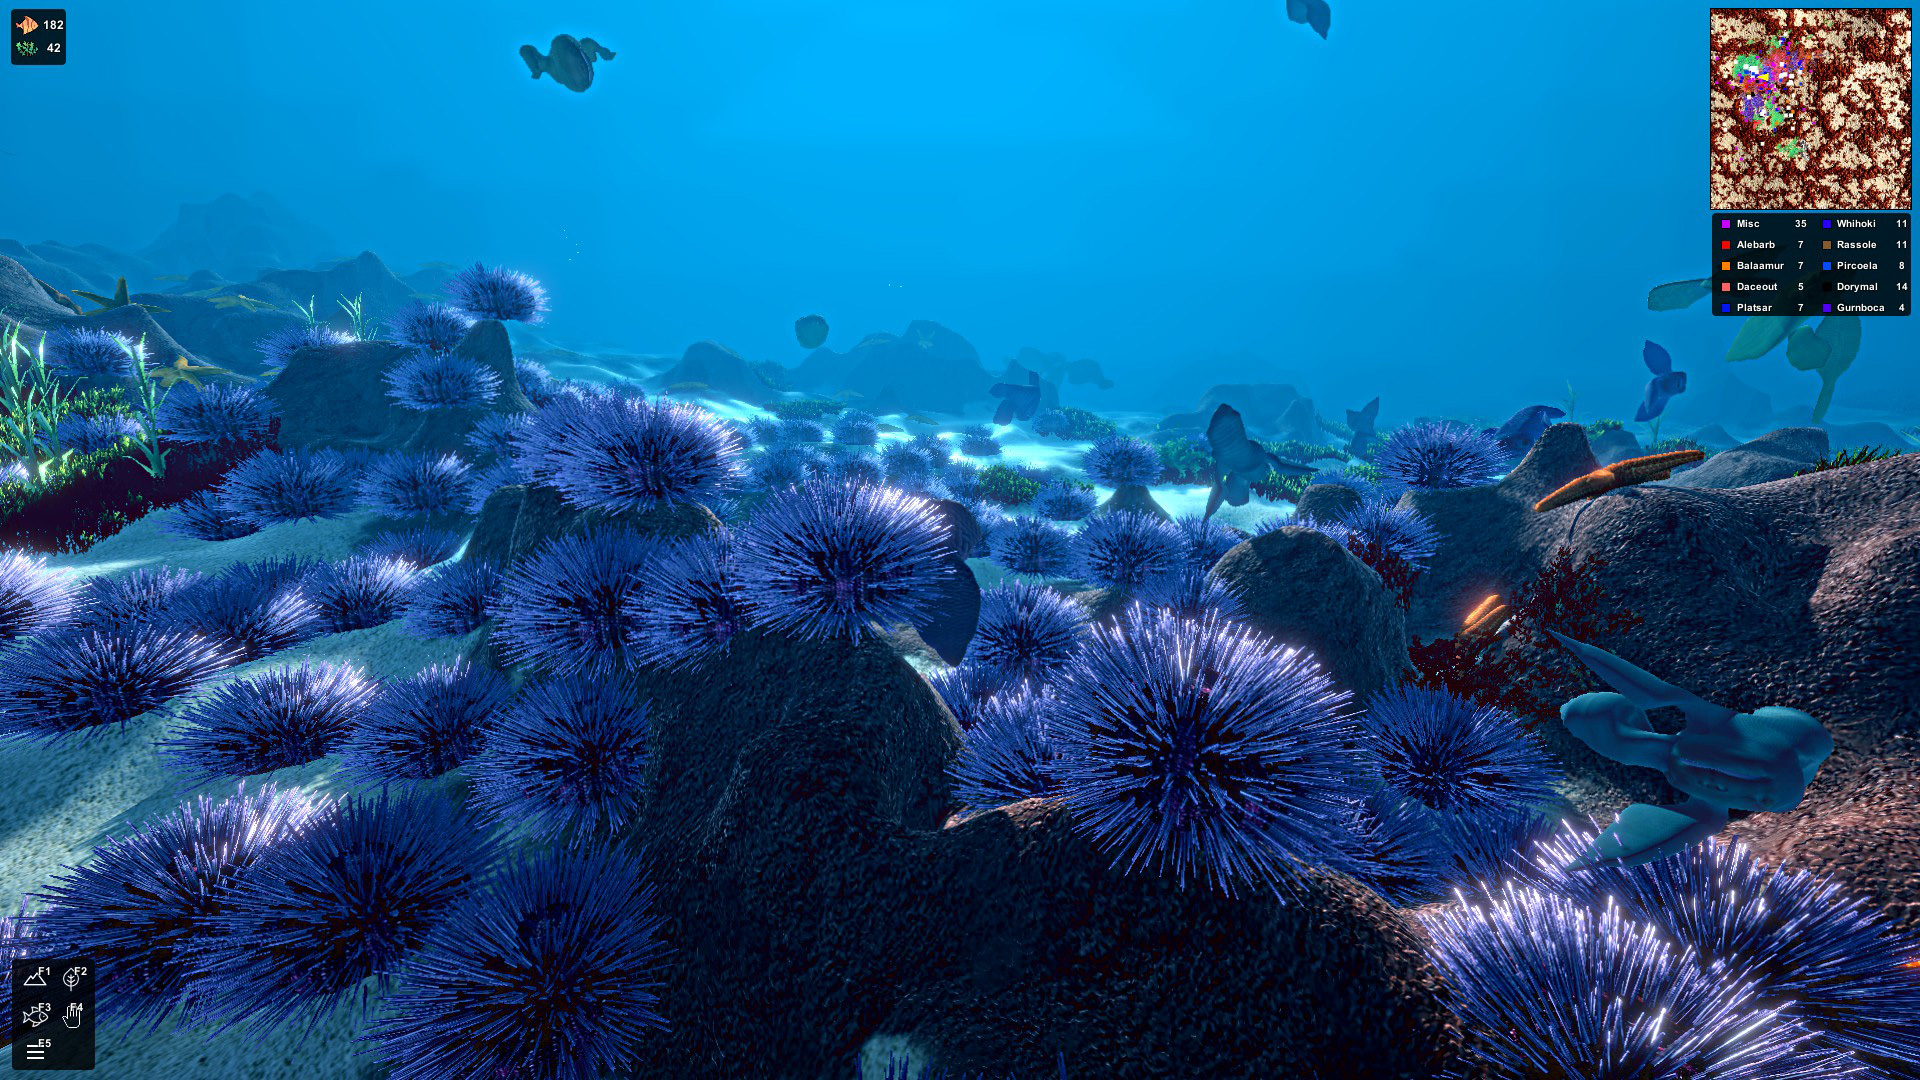 If you've seen an urchin time lapse, you know the drill.